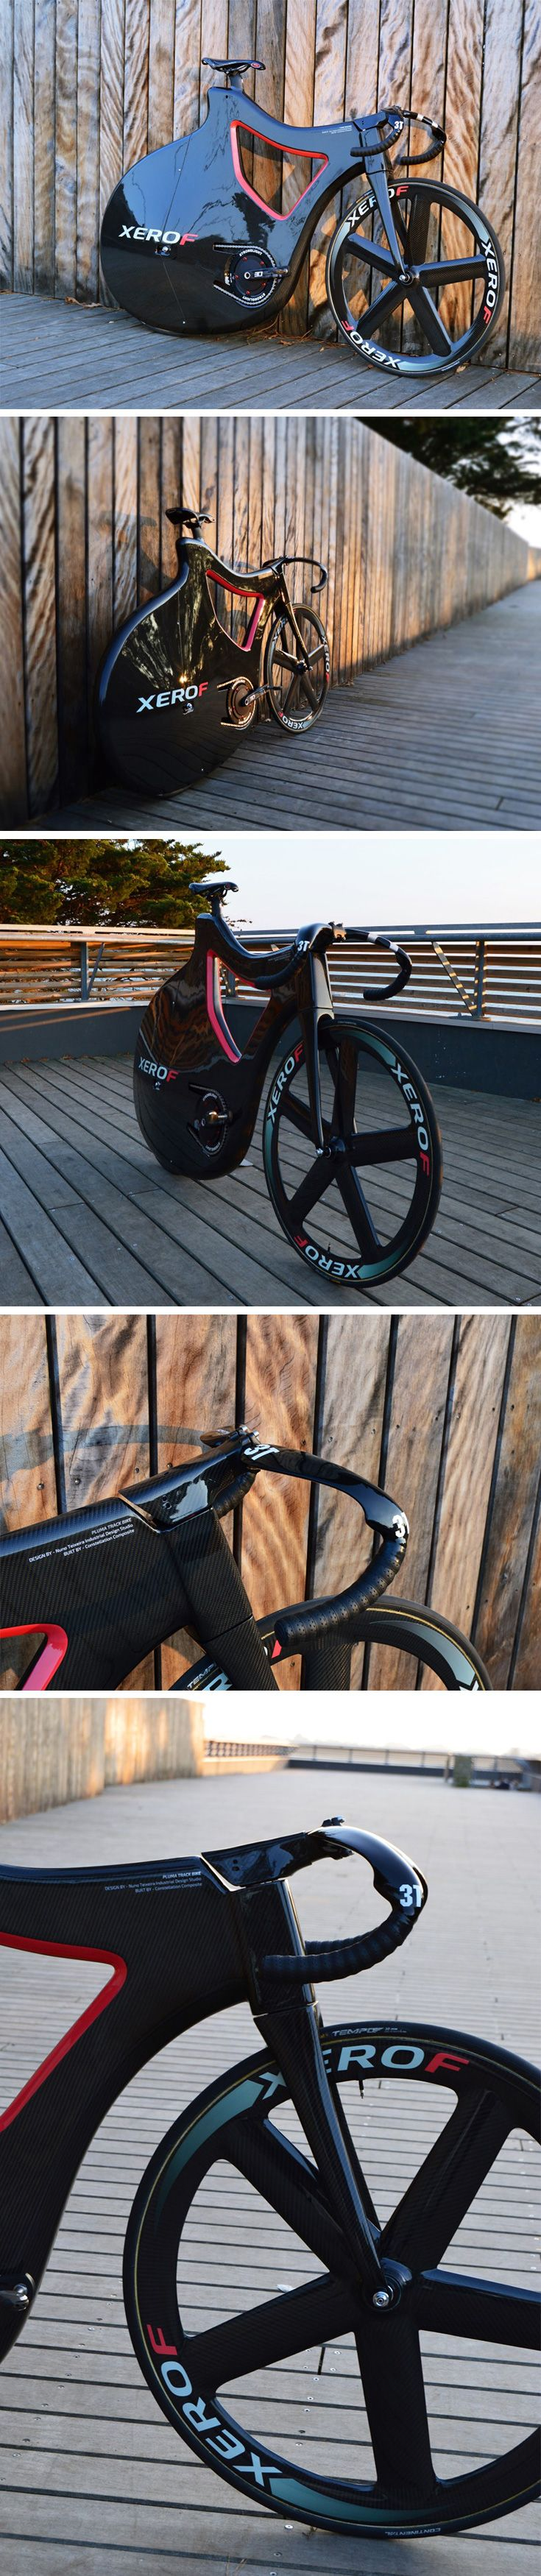 The Pluma is a Track Bike, focusing on being immensely resistant to stress, force, and pressure while minimizing drag. Pluma's bike frame is crafted entirely out of carbon fiber, with a PVC Foam core. The rear end of the bike is entirely clad by the frame, allowing air to be guided in a manner that gives Pluma its aerodynamics.